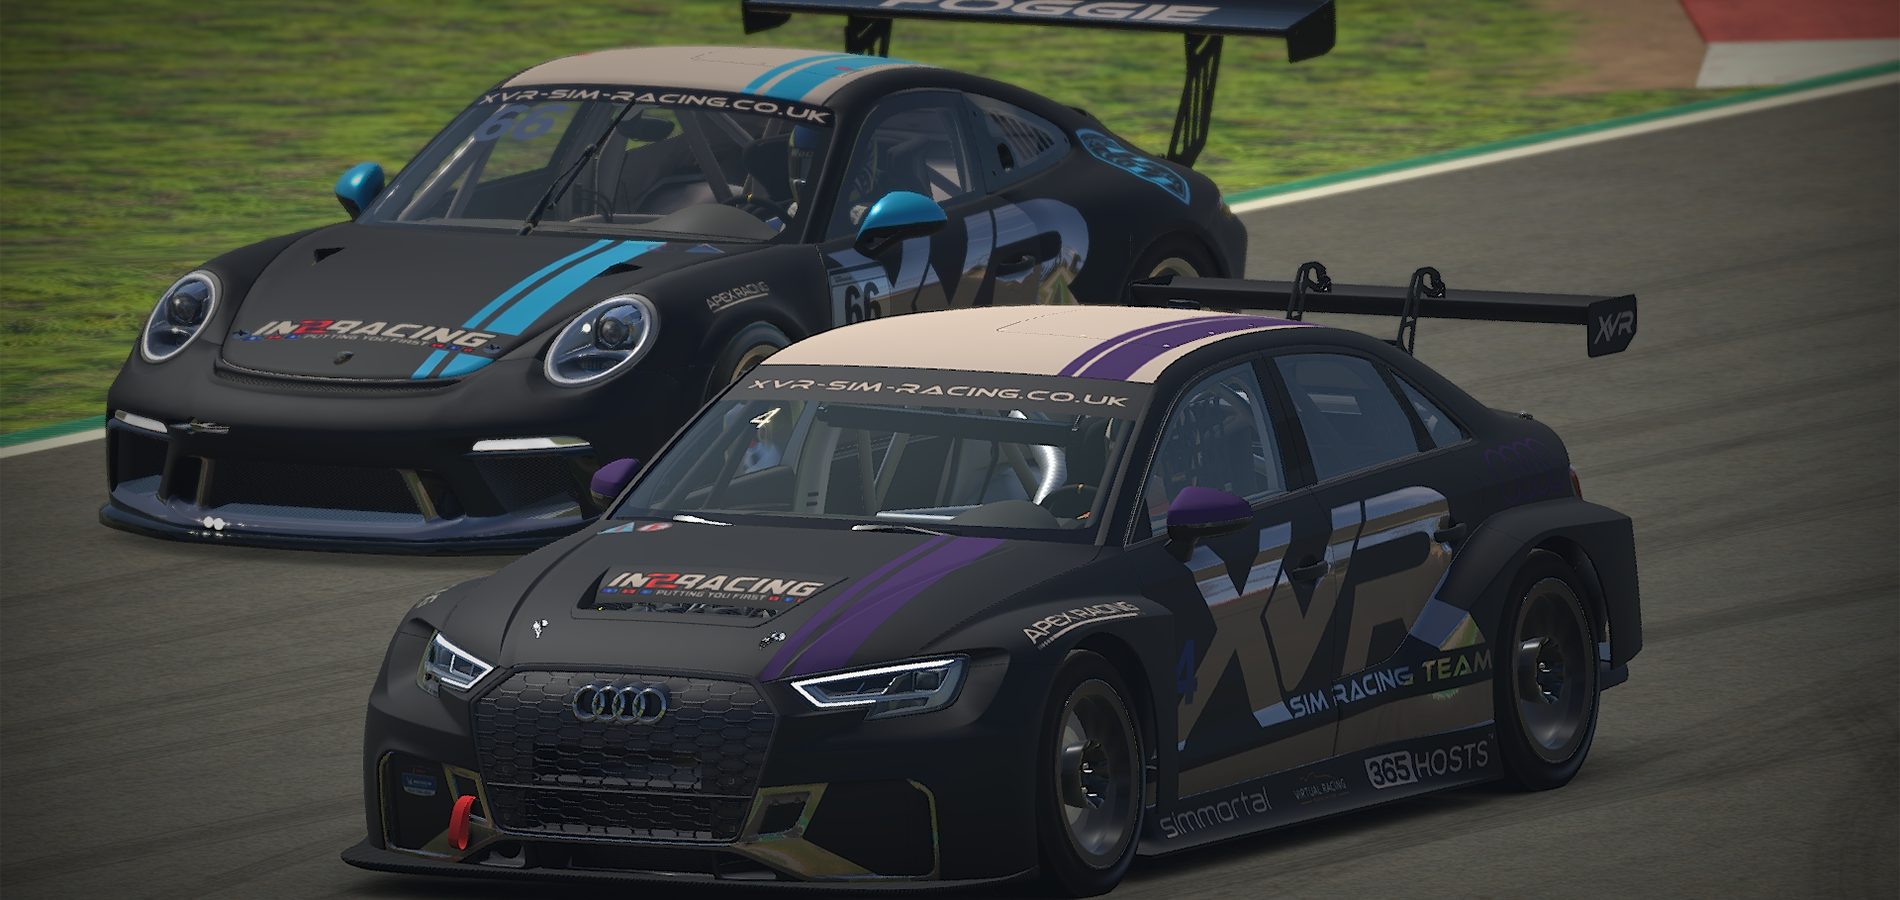 XVR showing off some new liveries